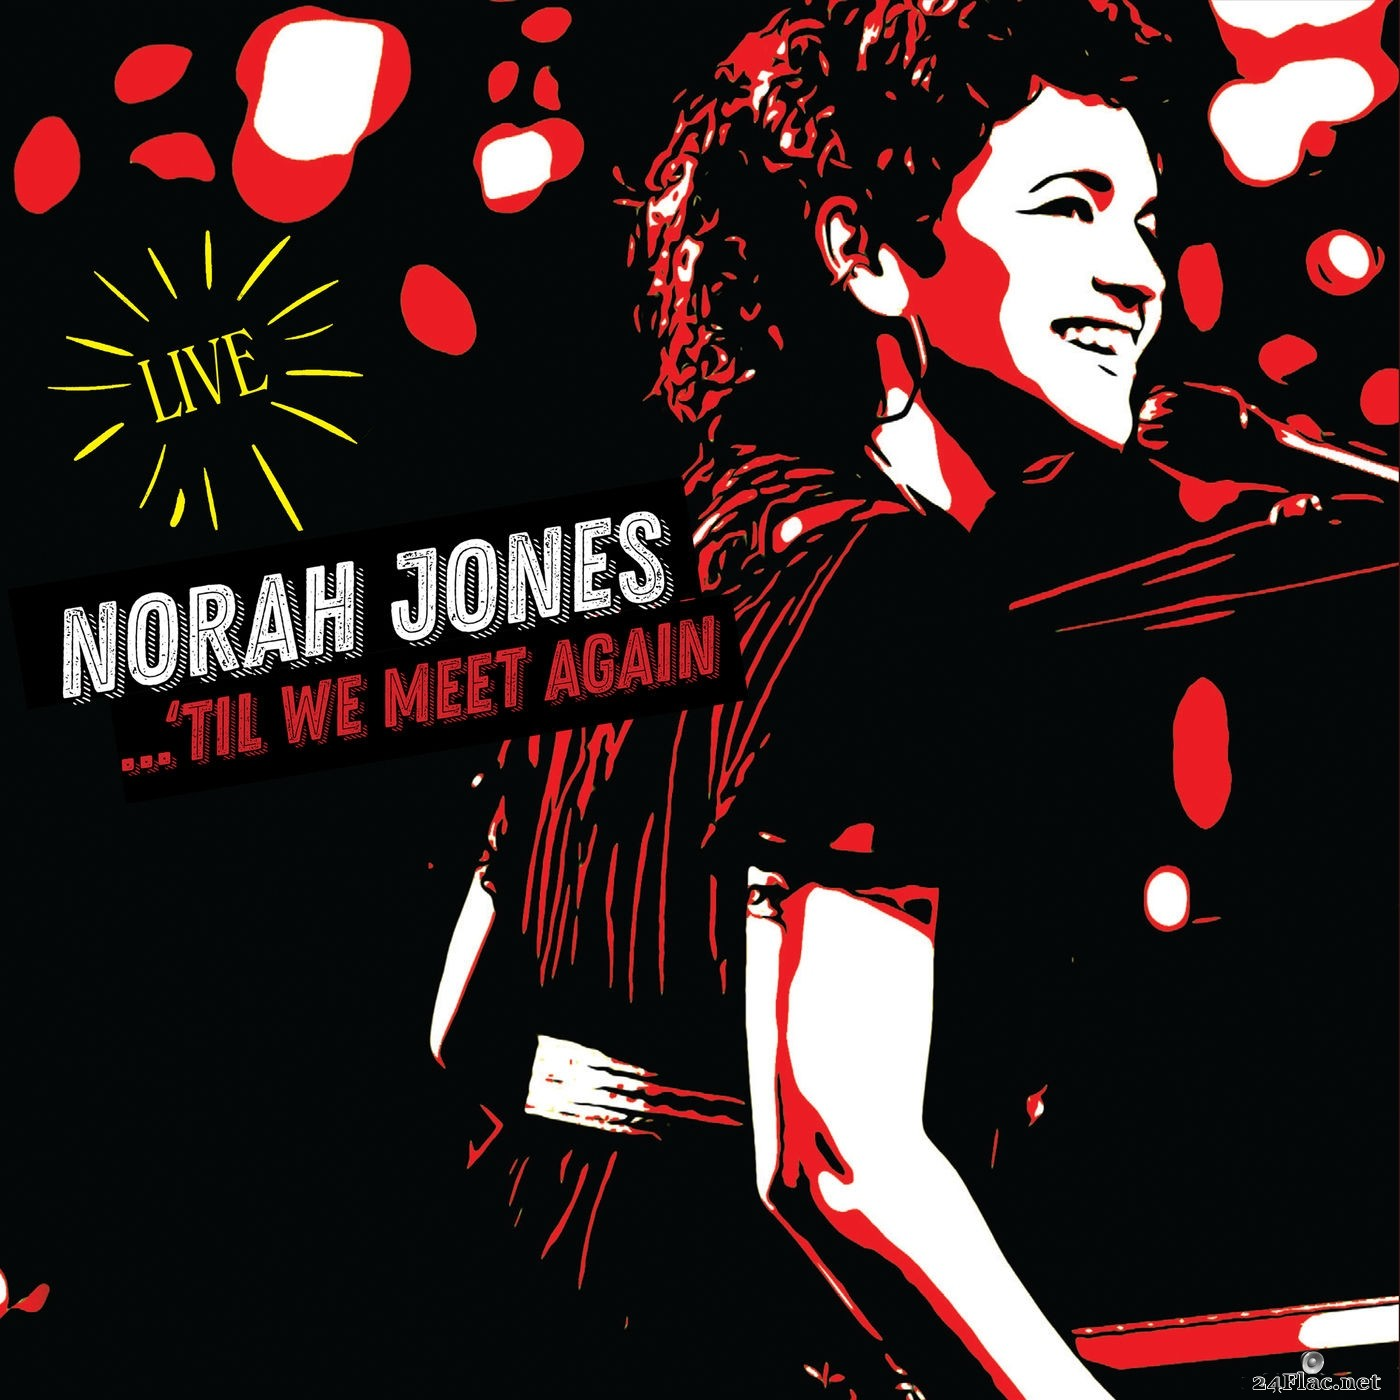 Norah Jones - 'Til We Meet Again (Live) (2021) Hi-Res